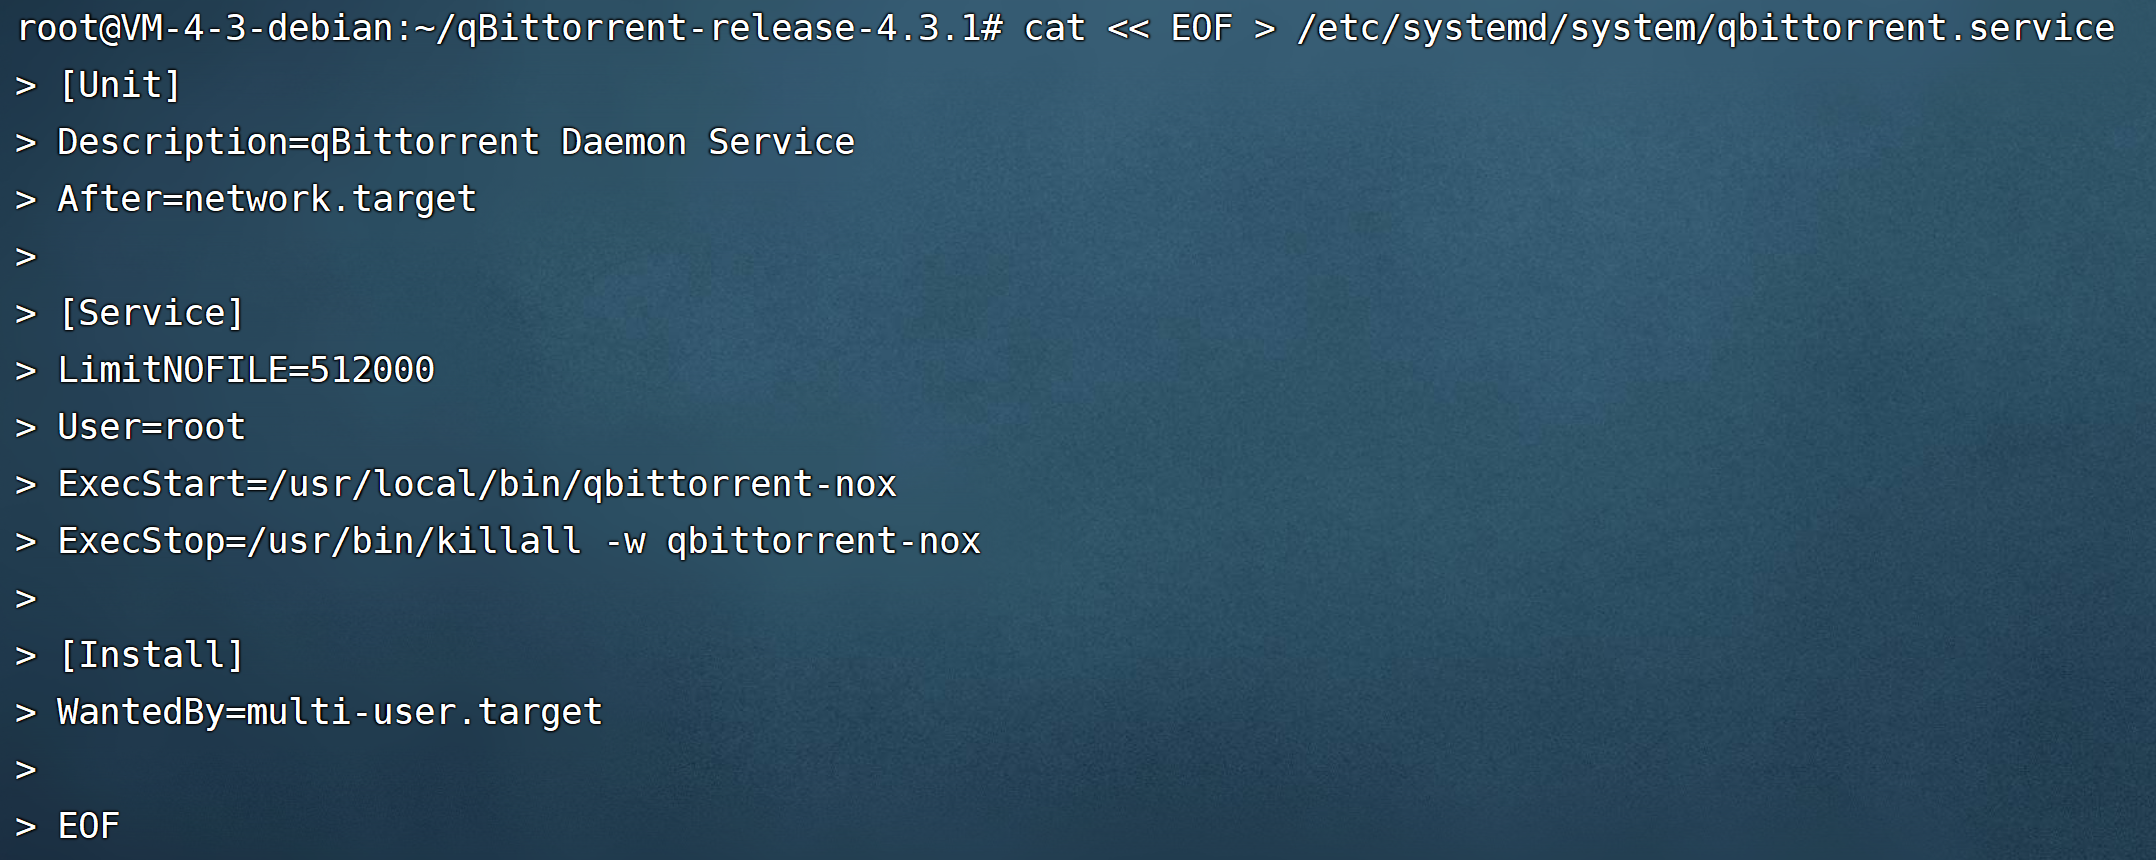 qcloud-Lighthouse-qBittorrent-systemd